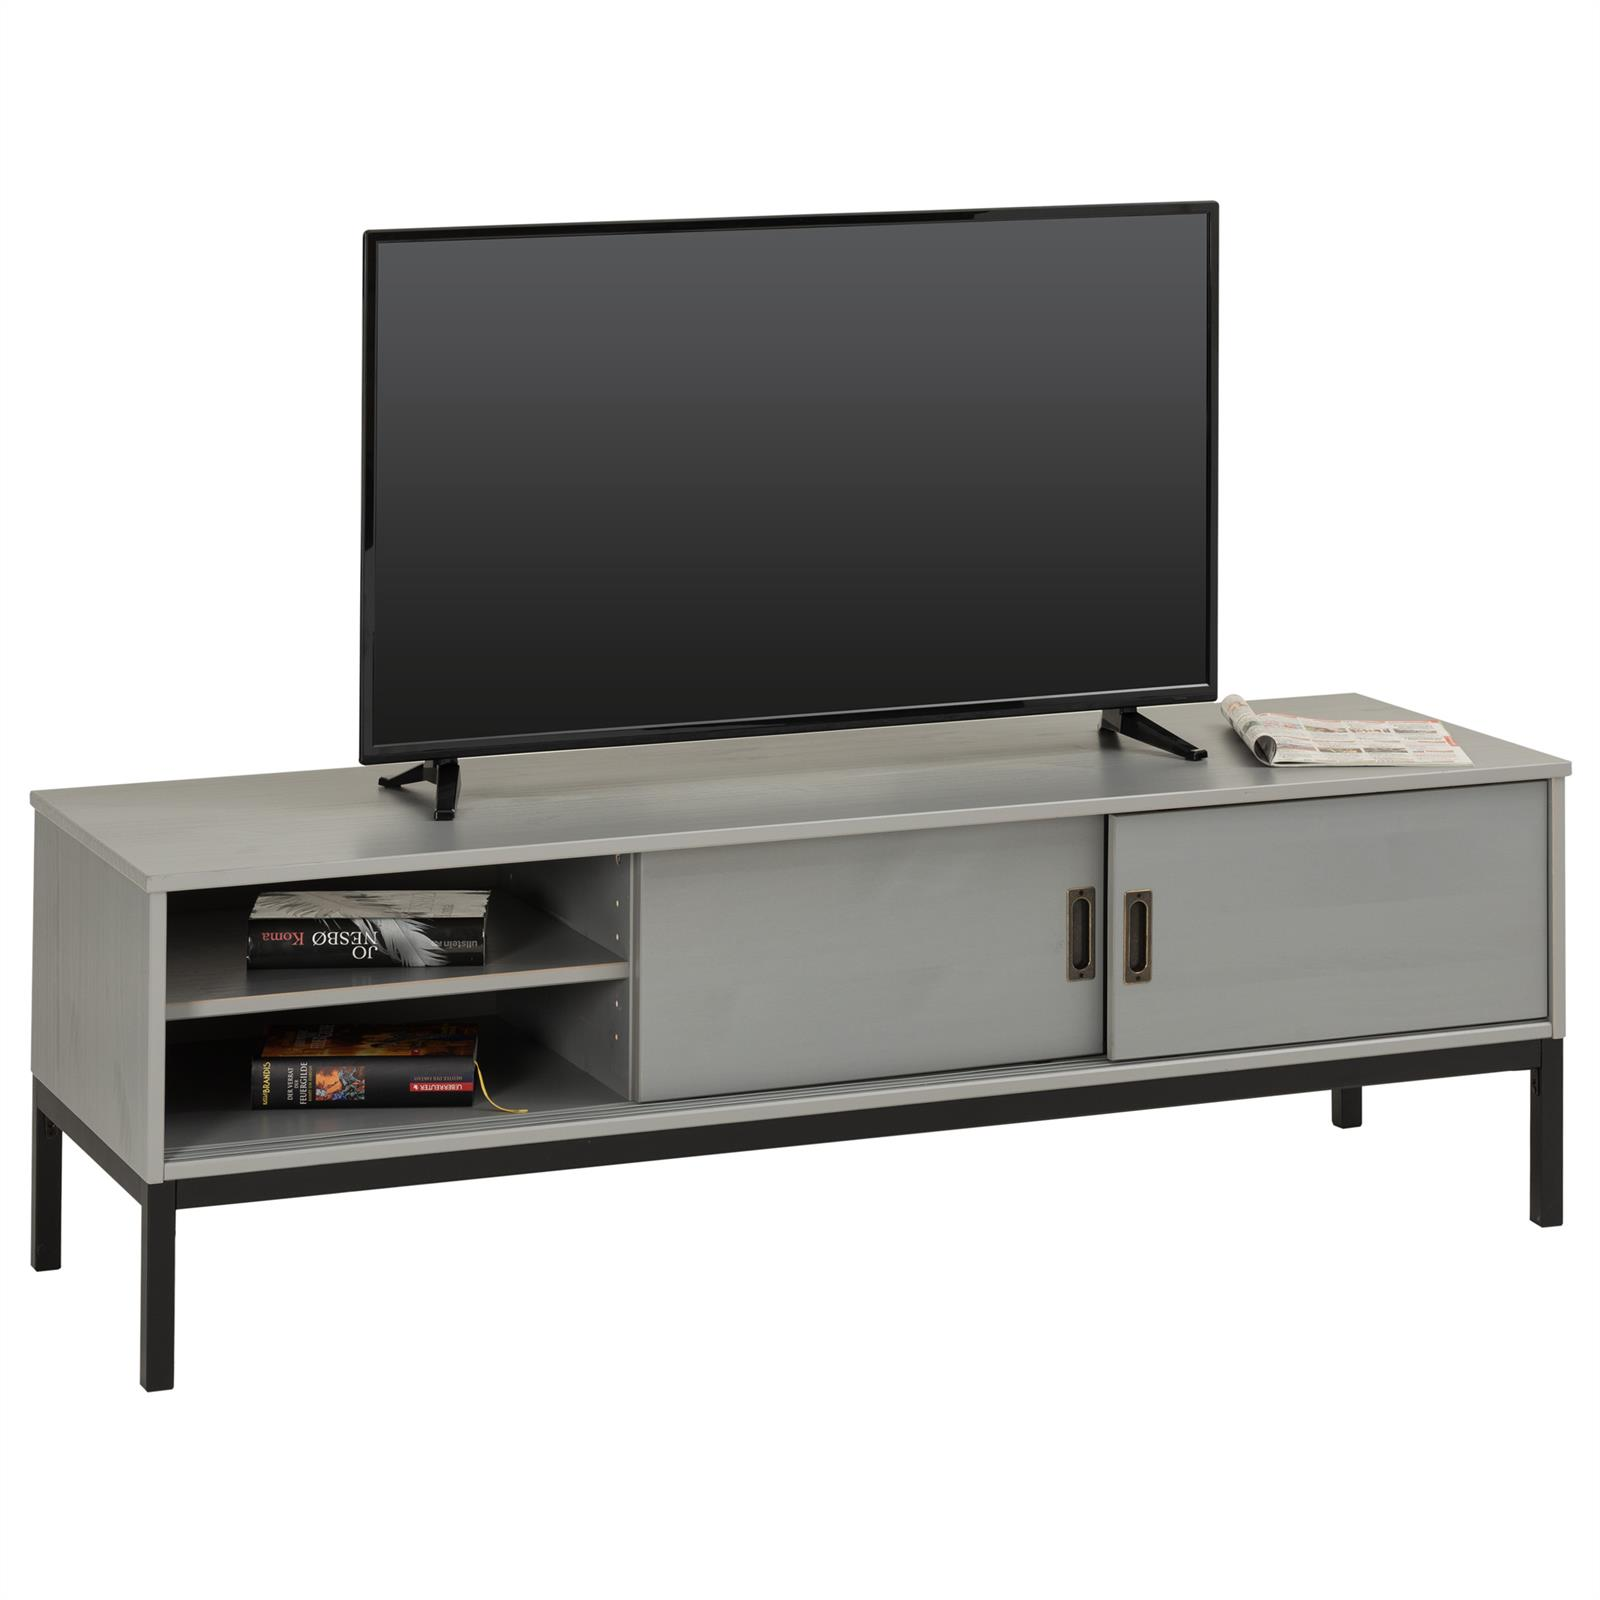 tv lowboard selma mit 2 schiebet ren grau mobilia24. Black Bedroom Furniture Sets. Home Design Ideas